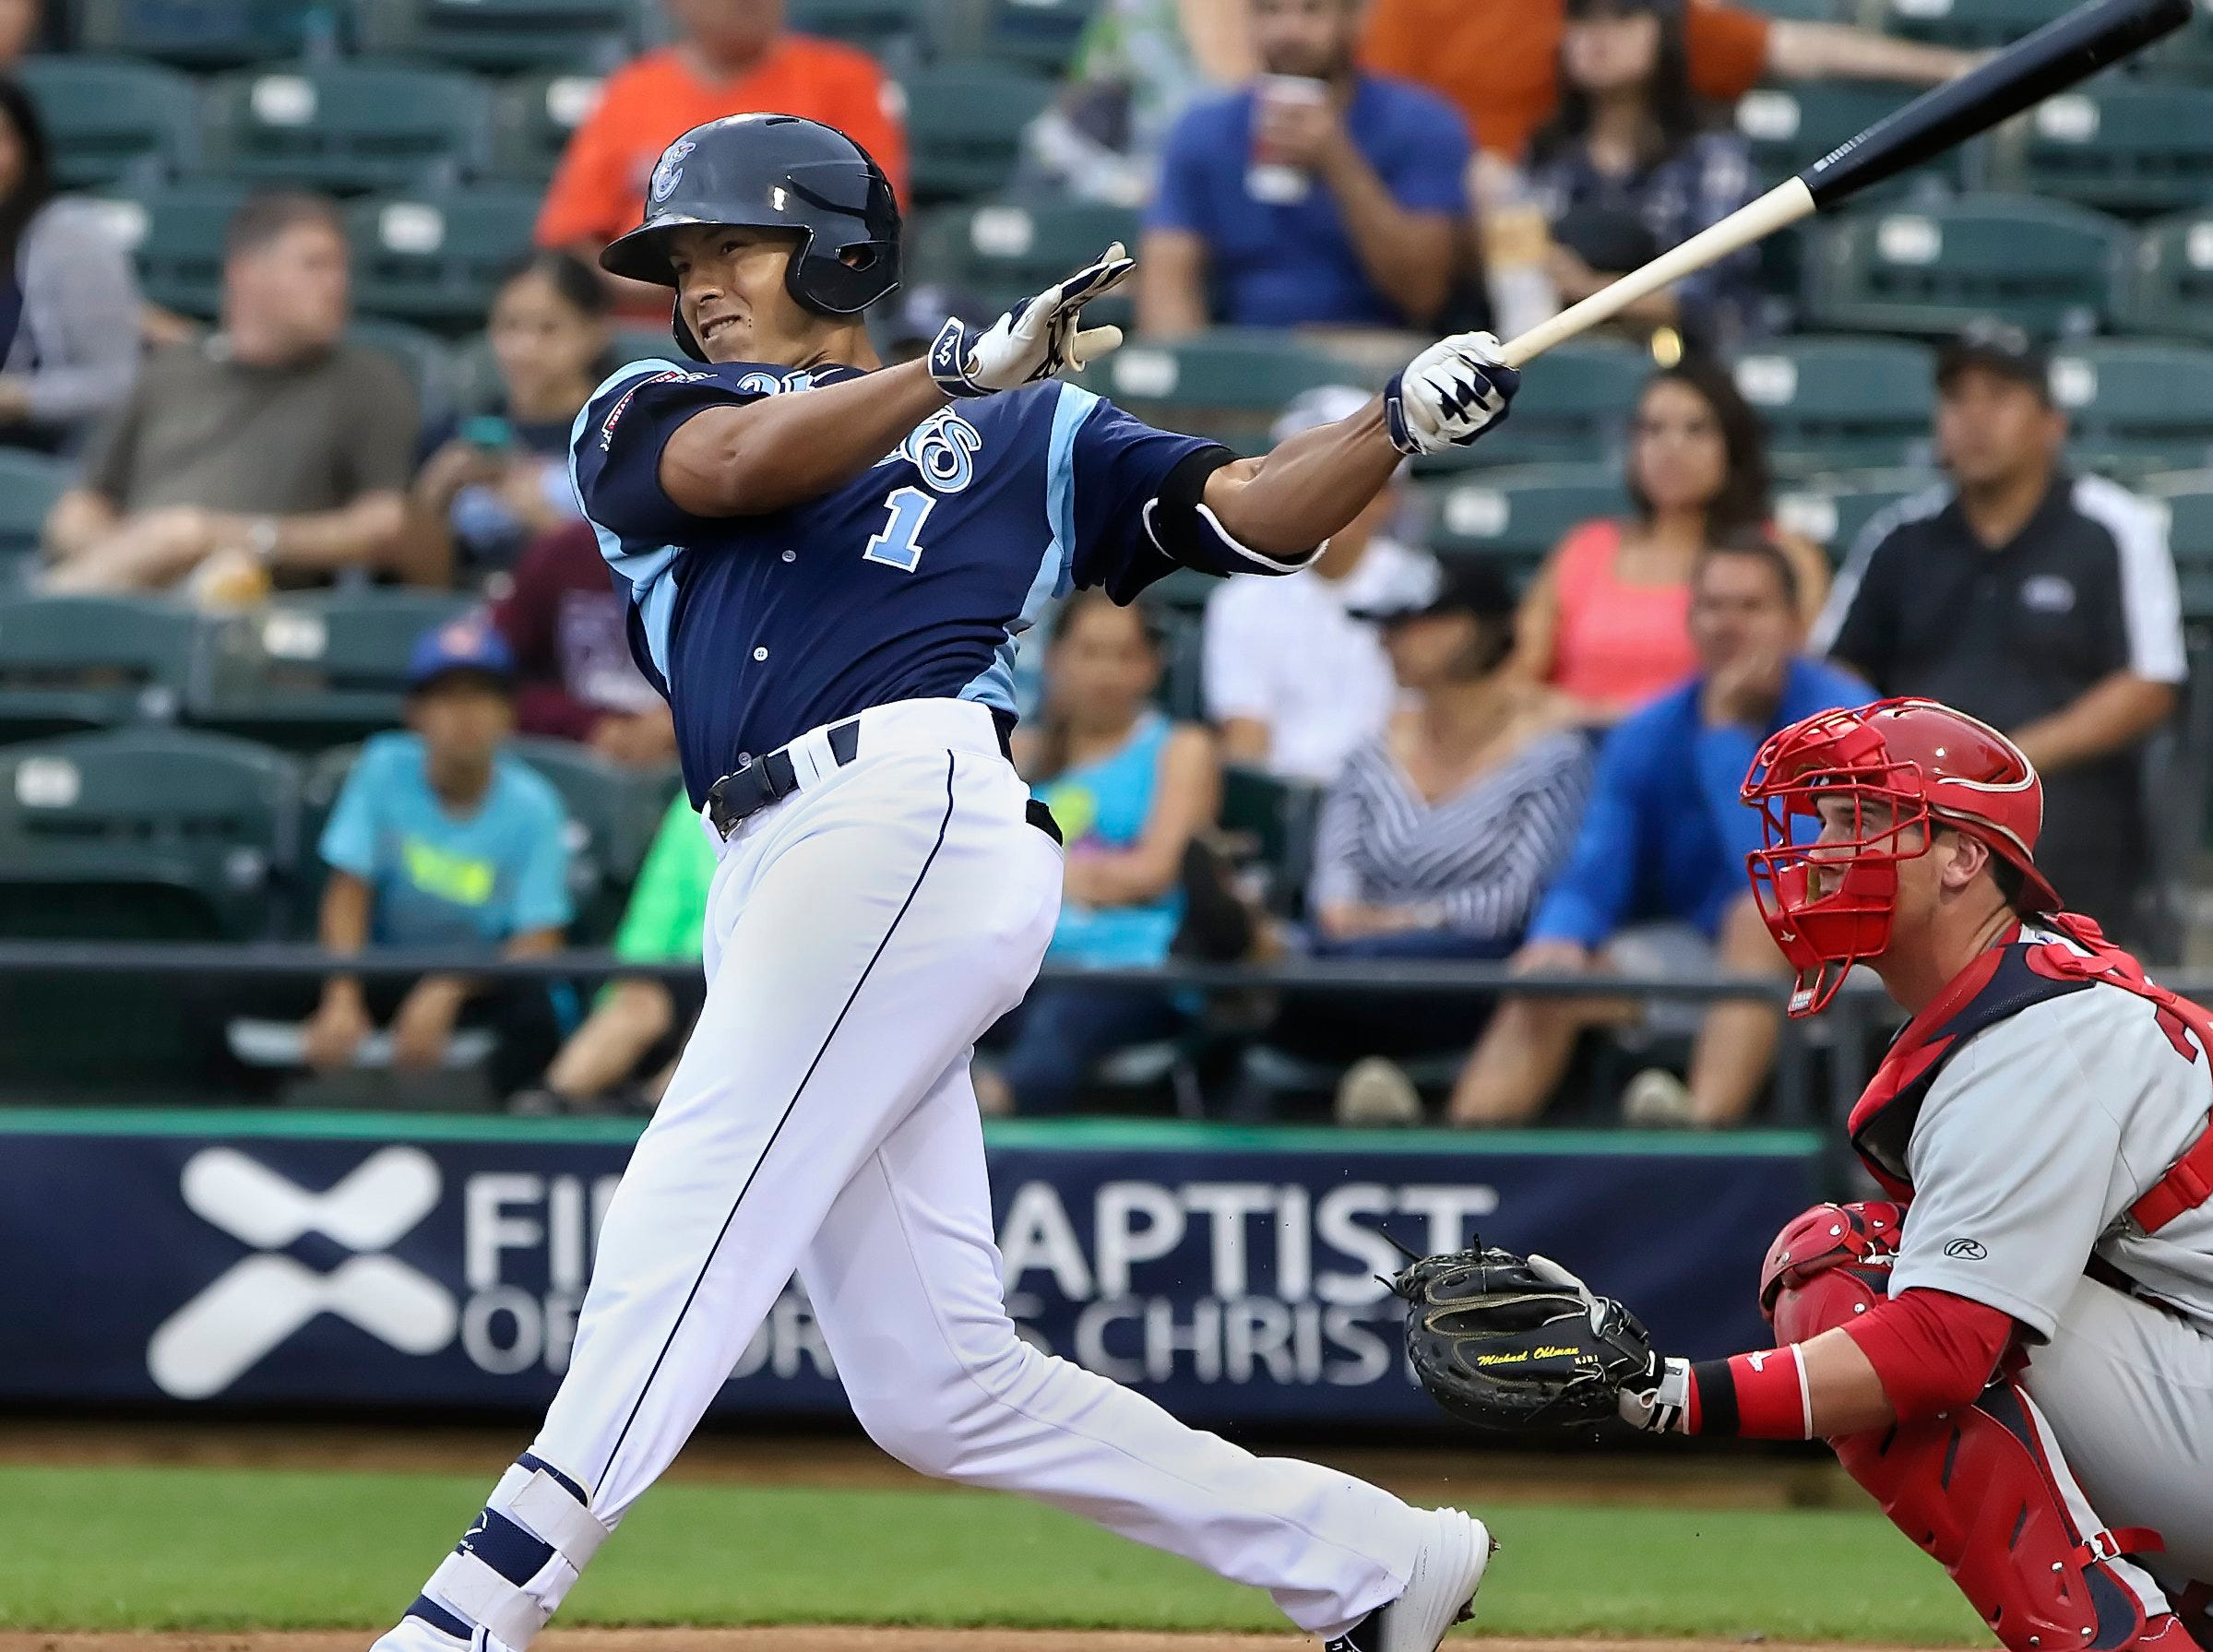 GEORGE TULEY/SPECIAL TO THE CALLER-TIMES Carlos Correa picked up an RBI double into the left field corner, scoring Tony Kemp to tie the game at 1-1 in the first inning at Whataburger Field in Corpus Christi, Friday, April 17, 2015.